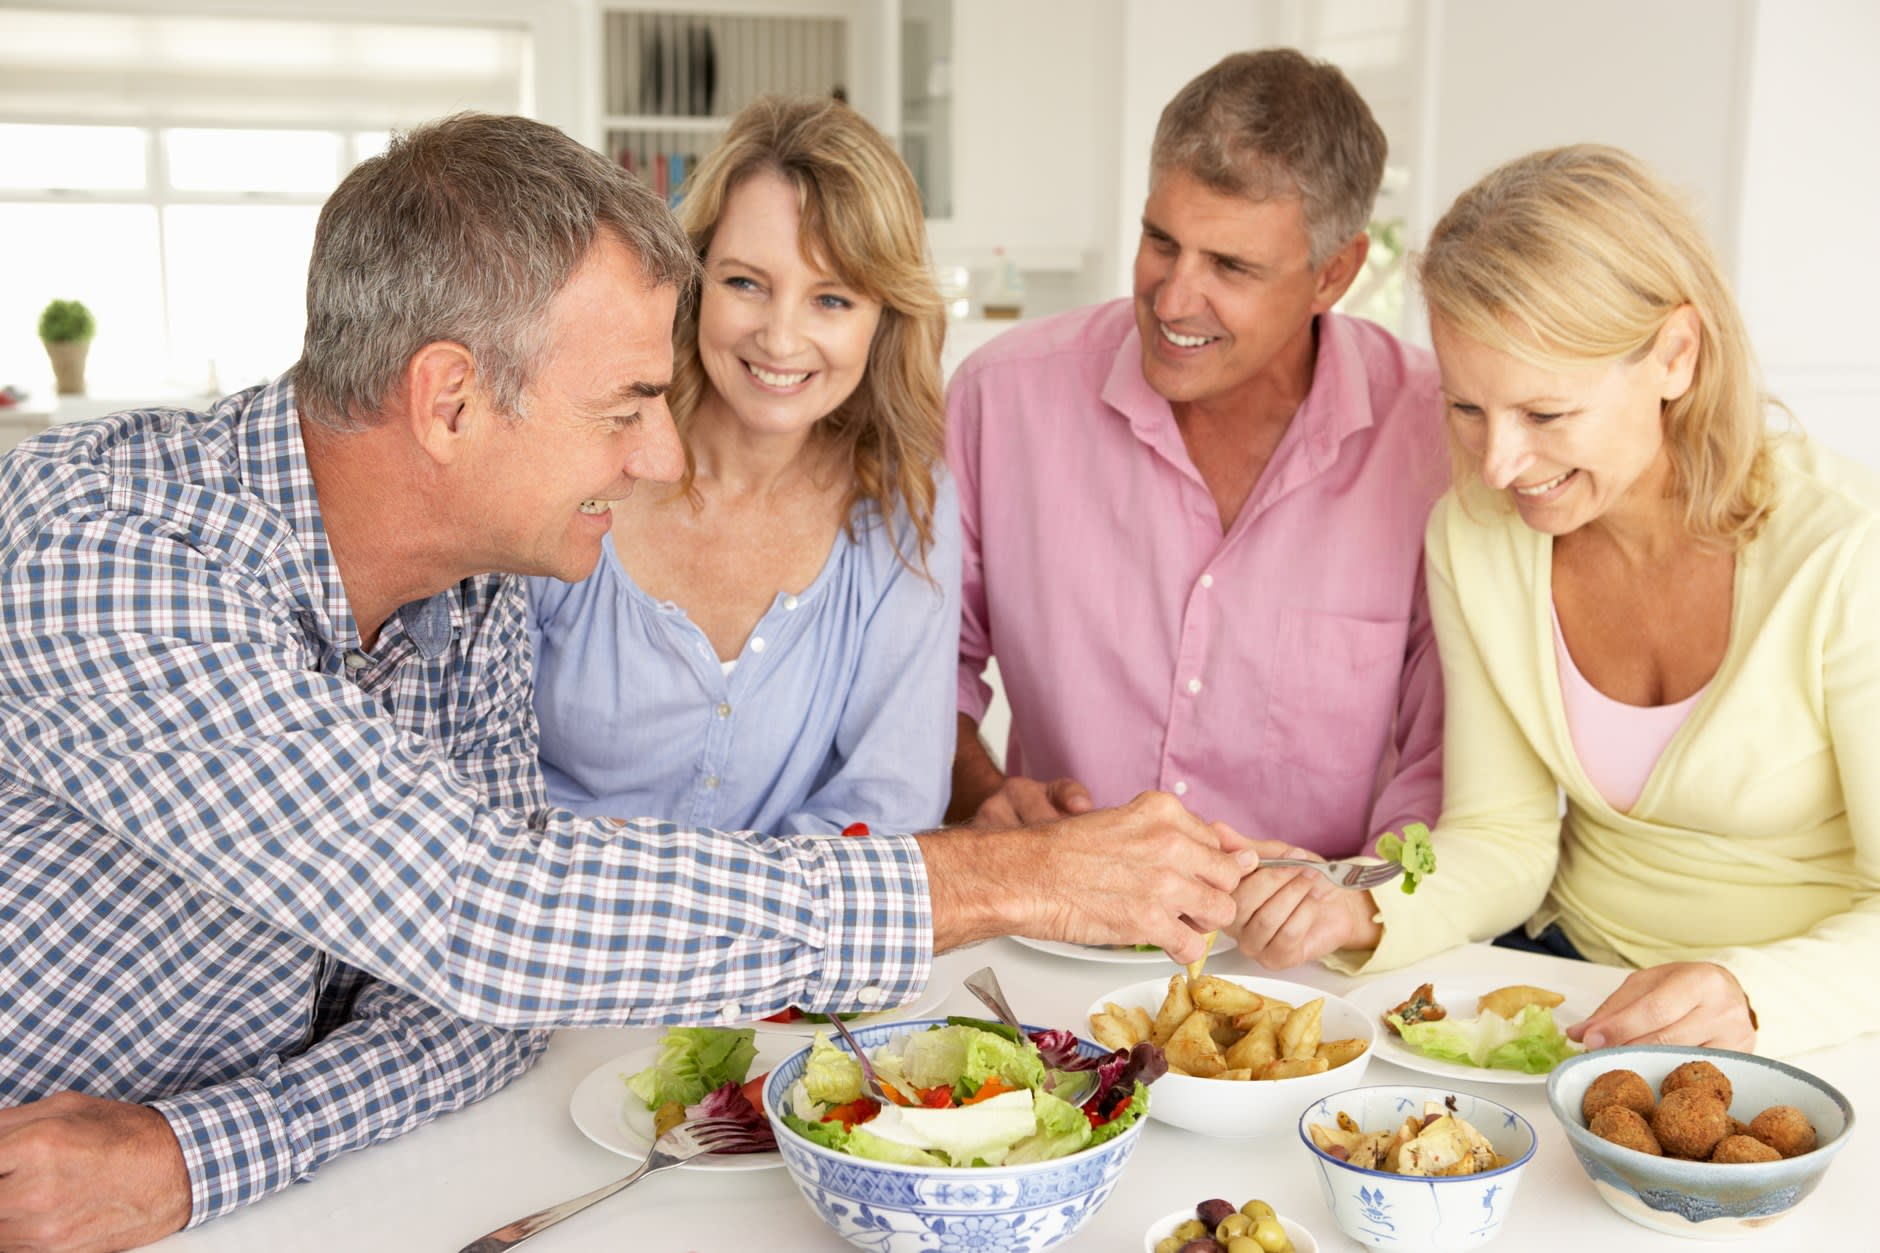 A group of friends in their 50s gather about a kitchen table laid out with snacks, one asks what foods he can eat as a new denture wearer.